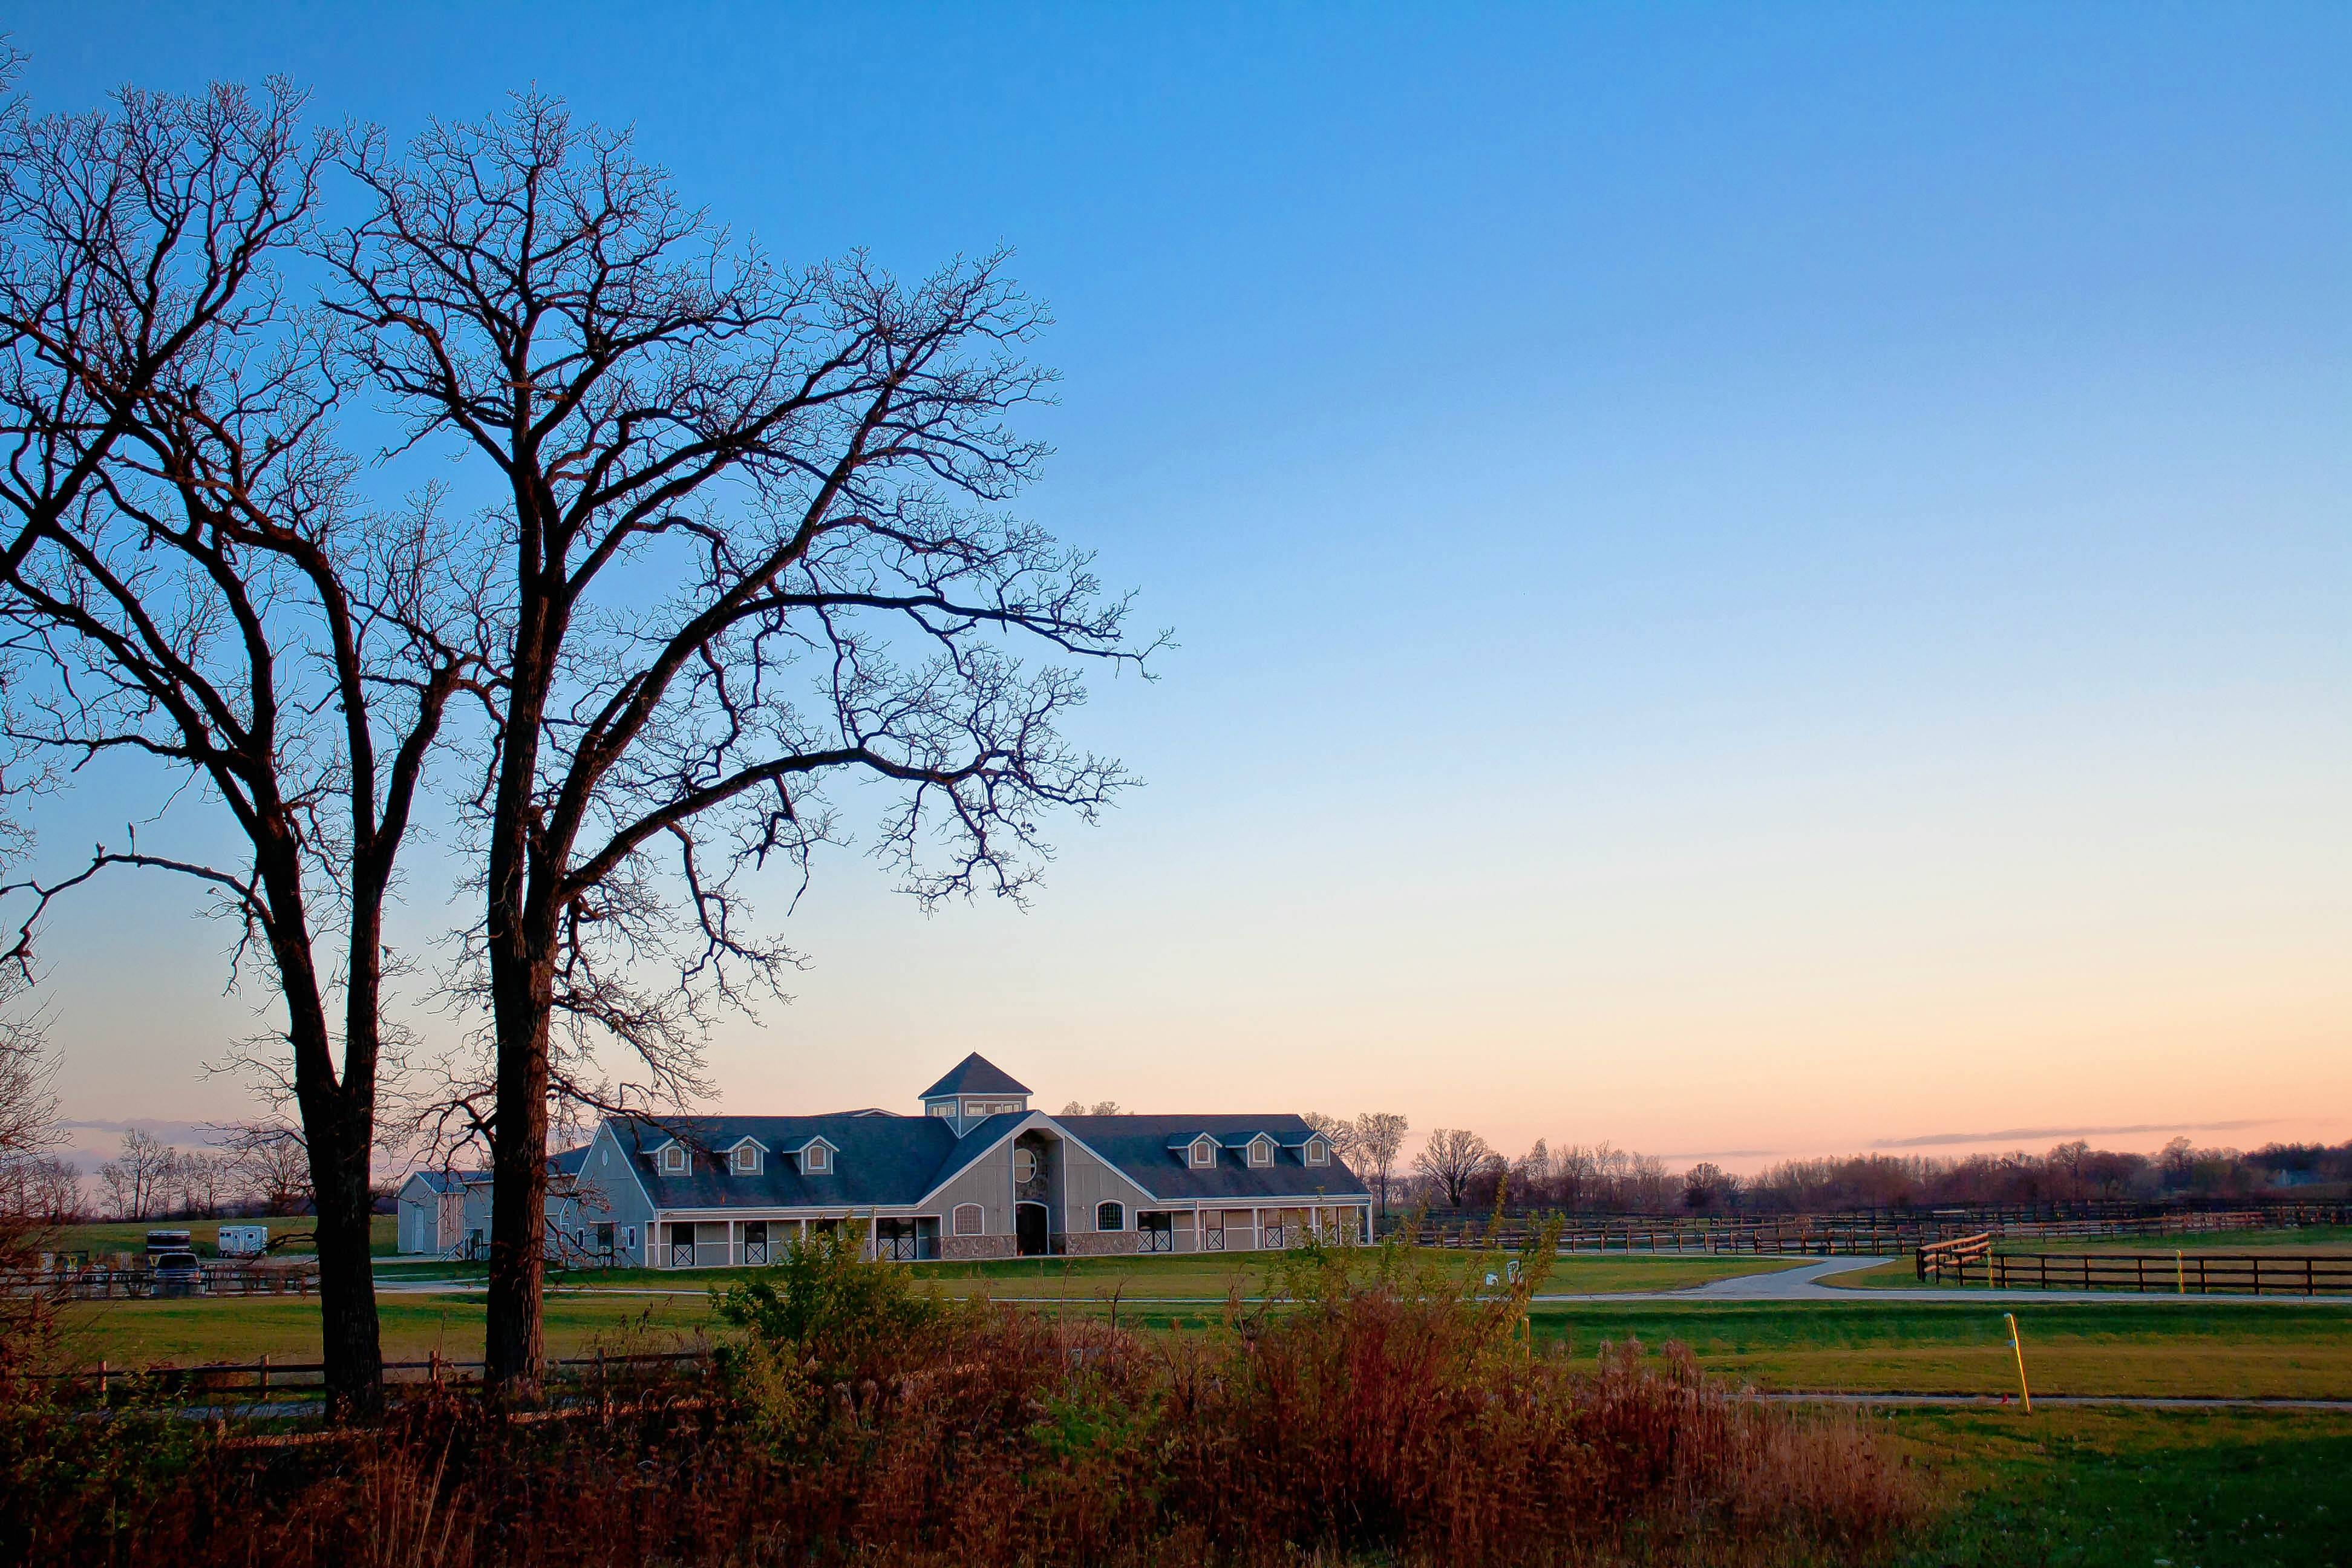 The equestrian center at Serosun Farms near Hampshire is part of a 400-acre development that includes 114, one-acre homesites.